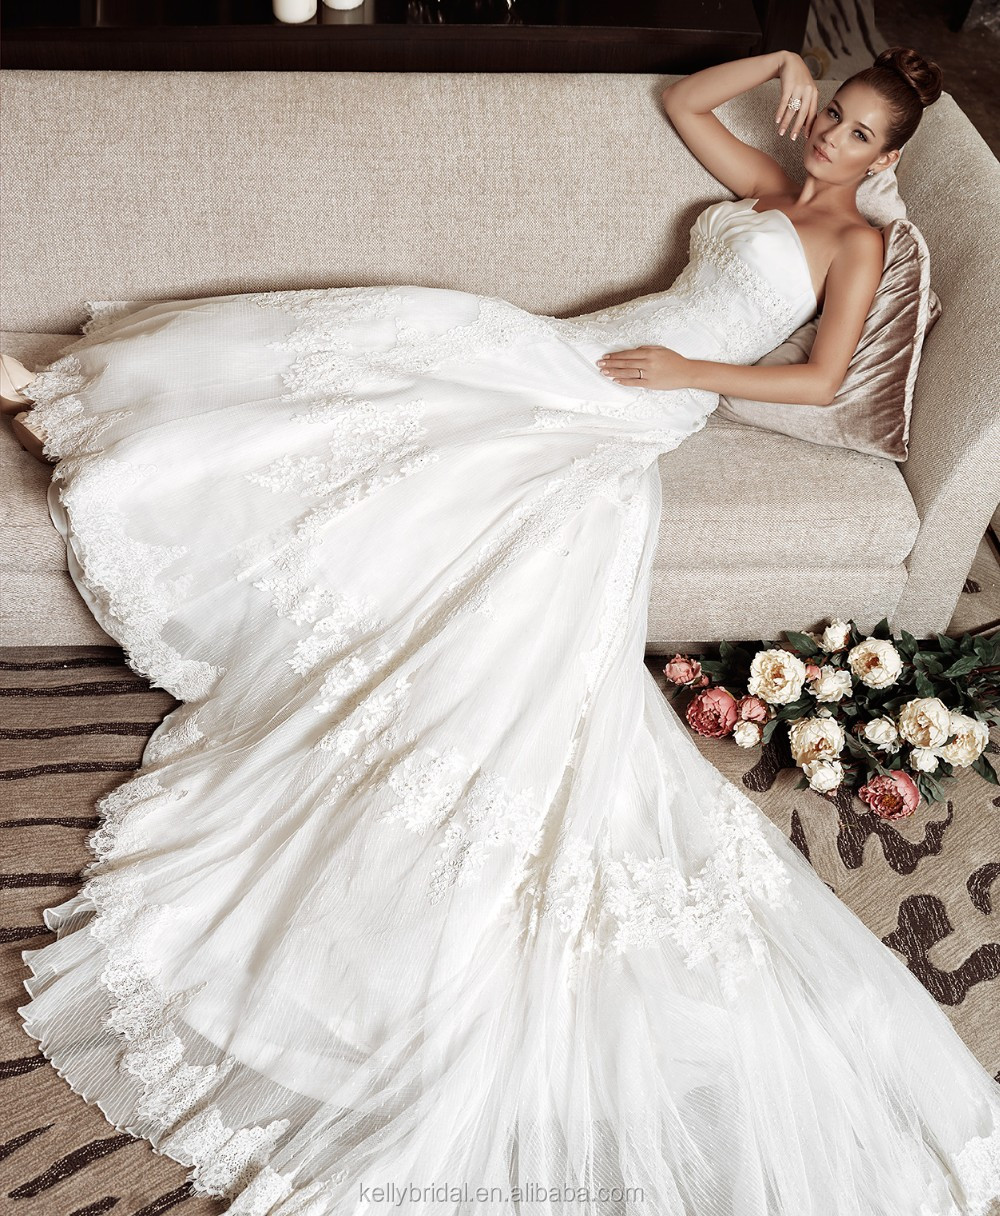 ZM16030 Detachable Big Long Train Gown Vintage Sweetheart White Wedding Dress 2016 Beach Bridal